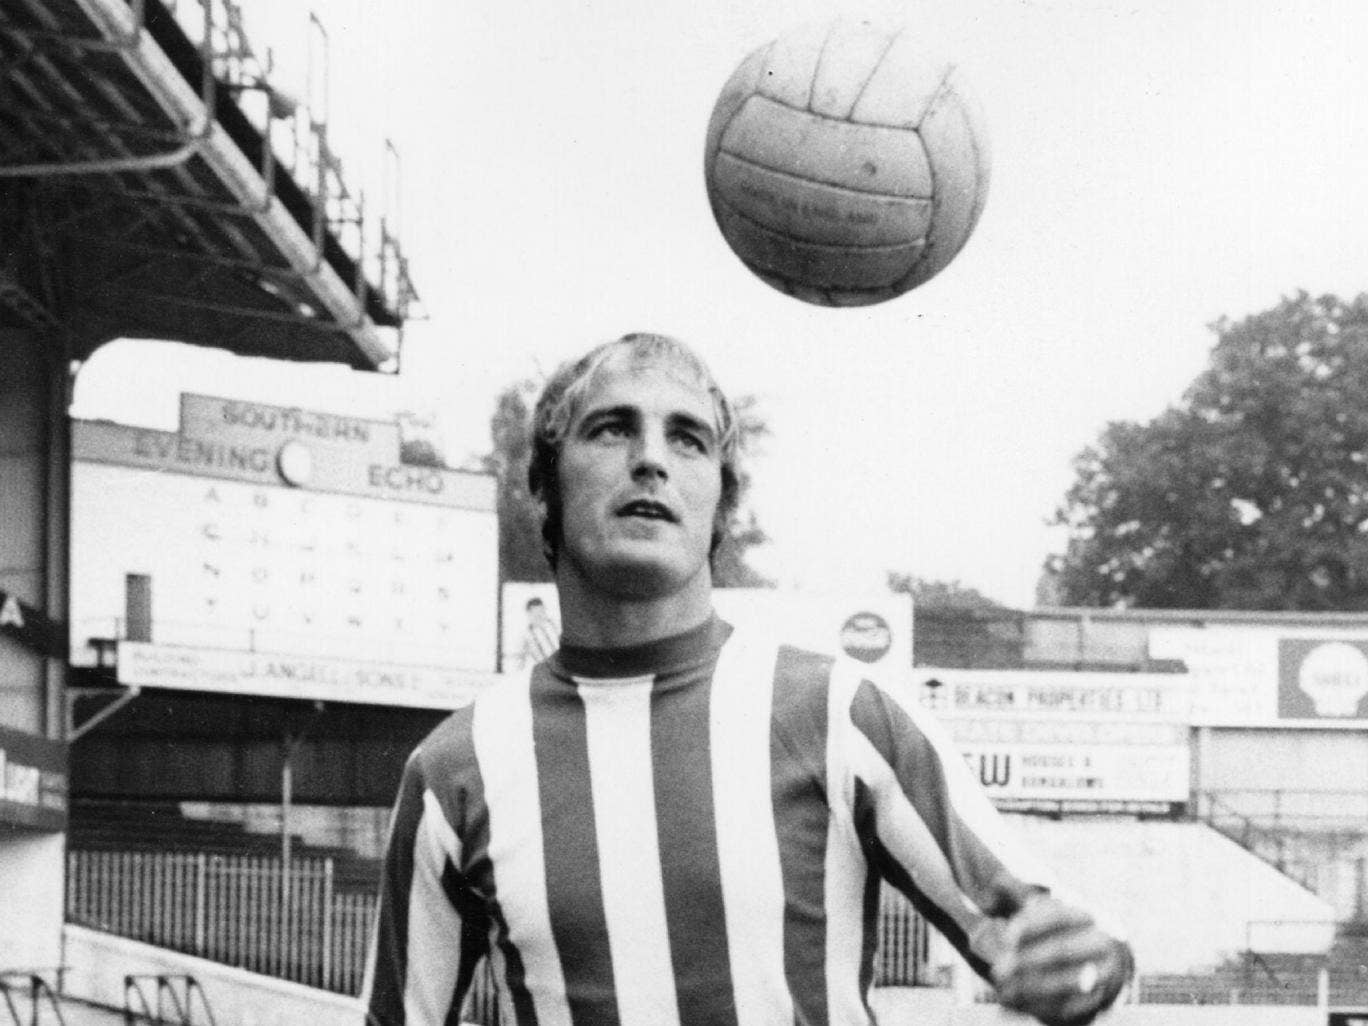 Ron Davies: A striker who 'had the beating of virtually any opponent'